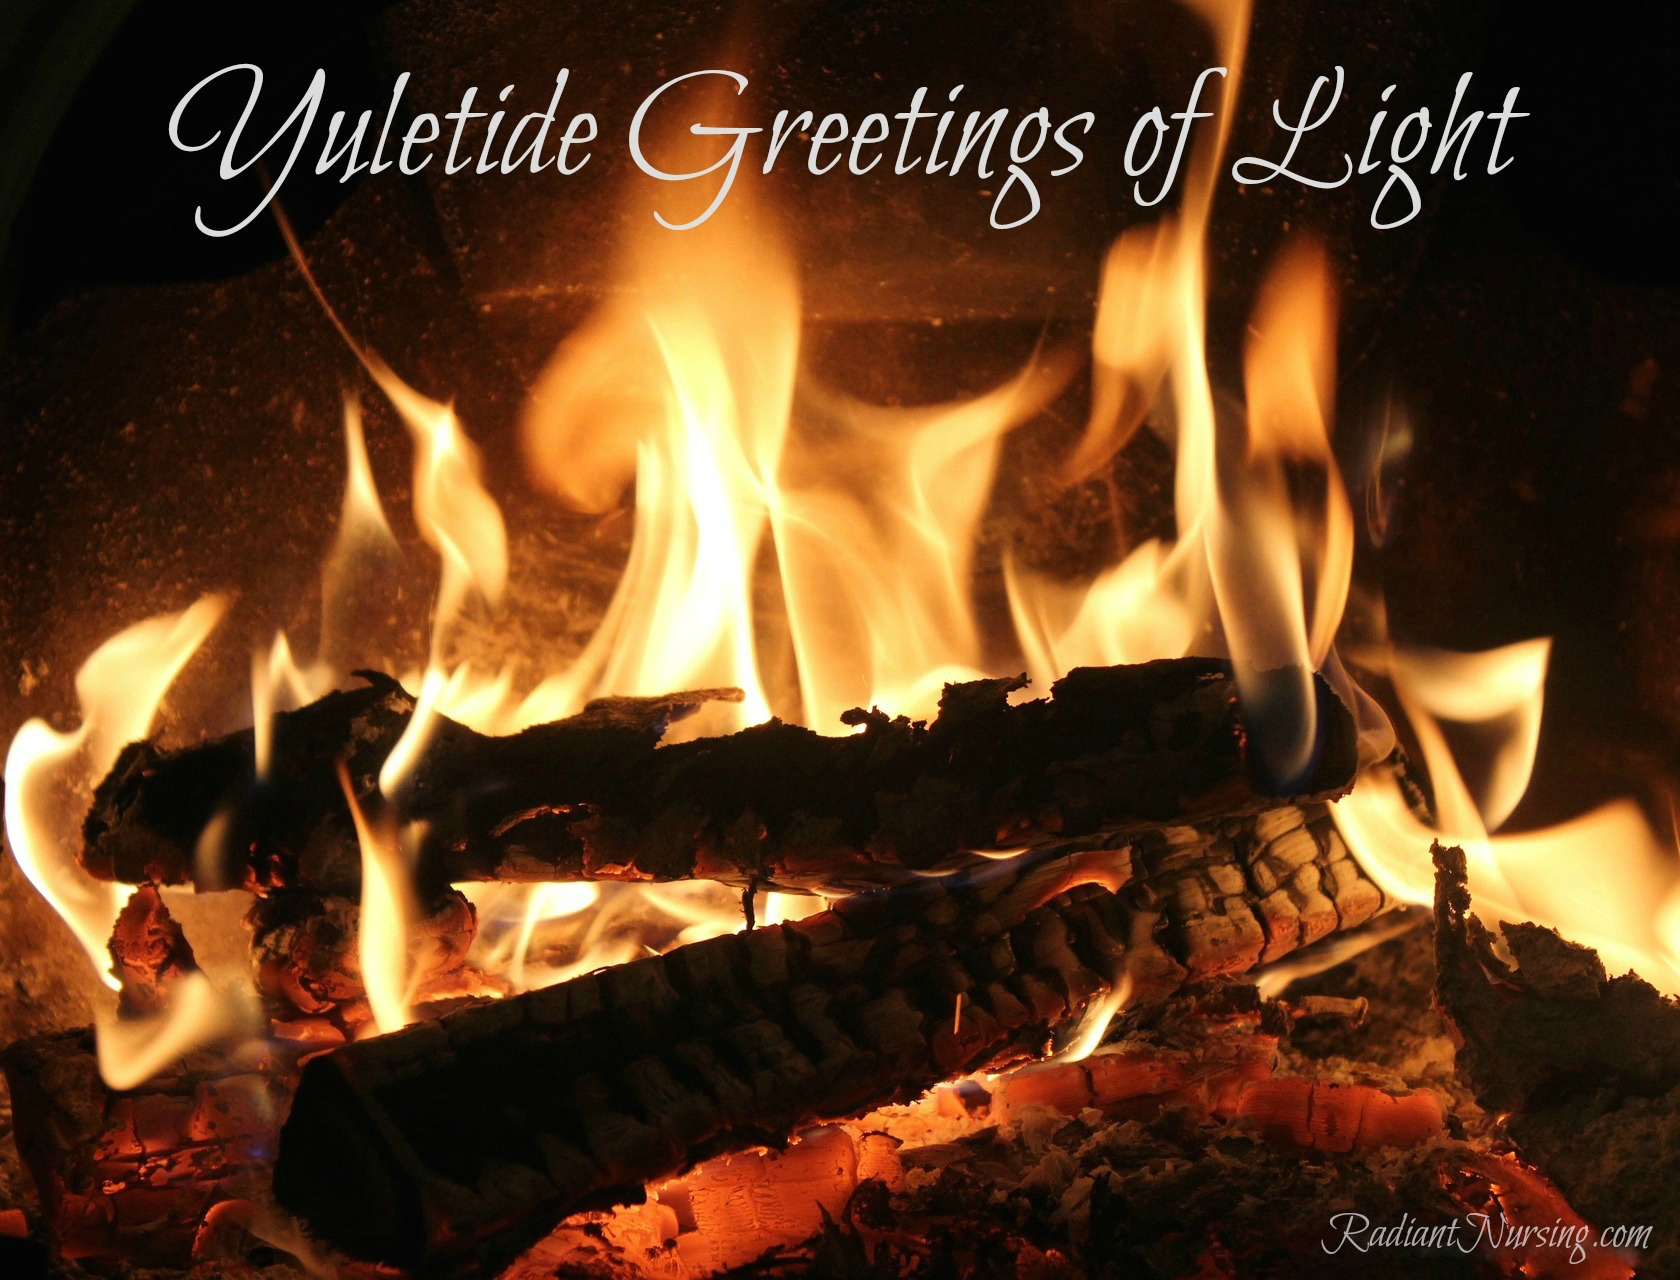 Yuletide Greetings of Light